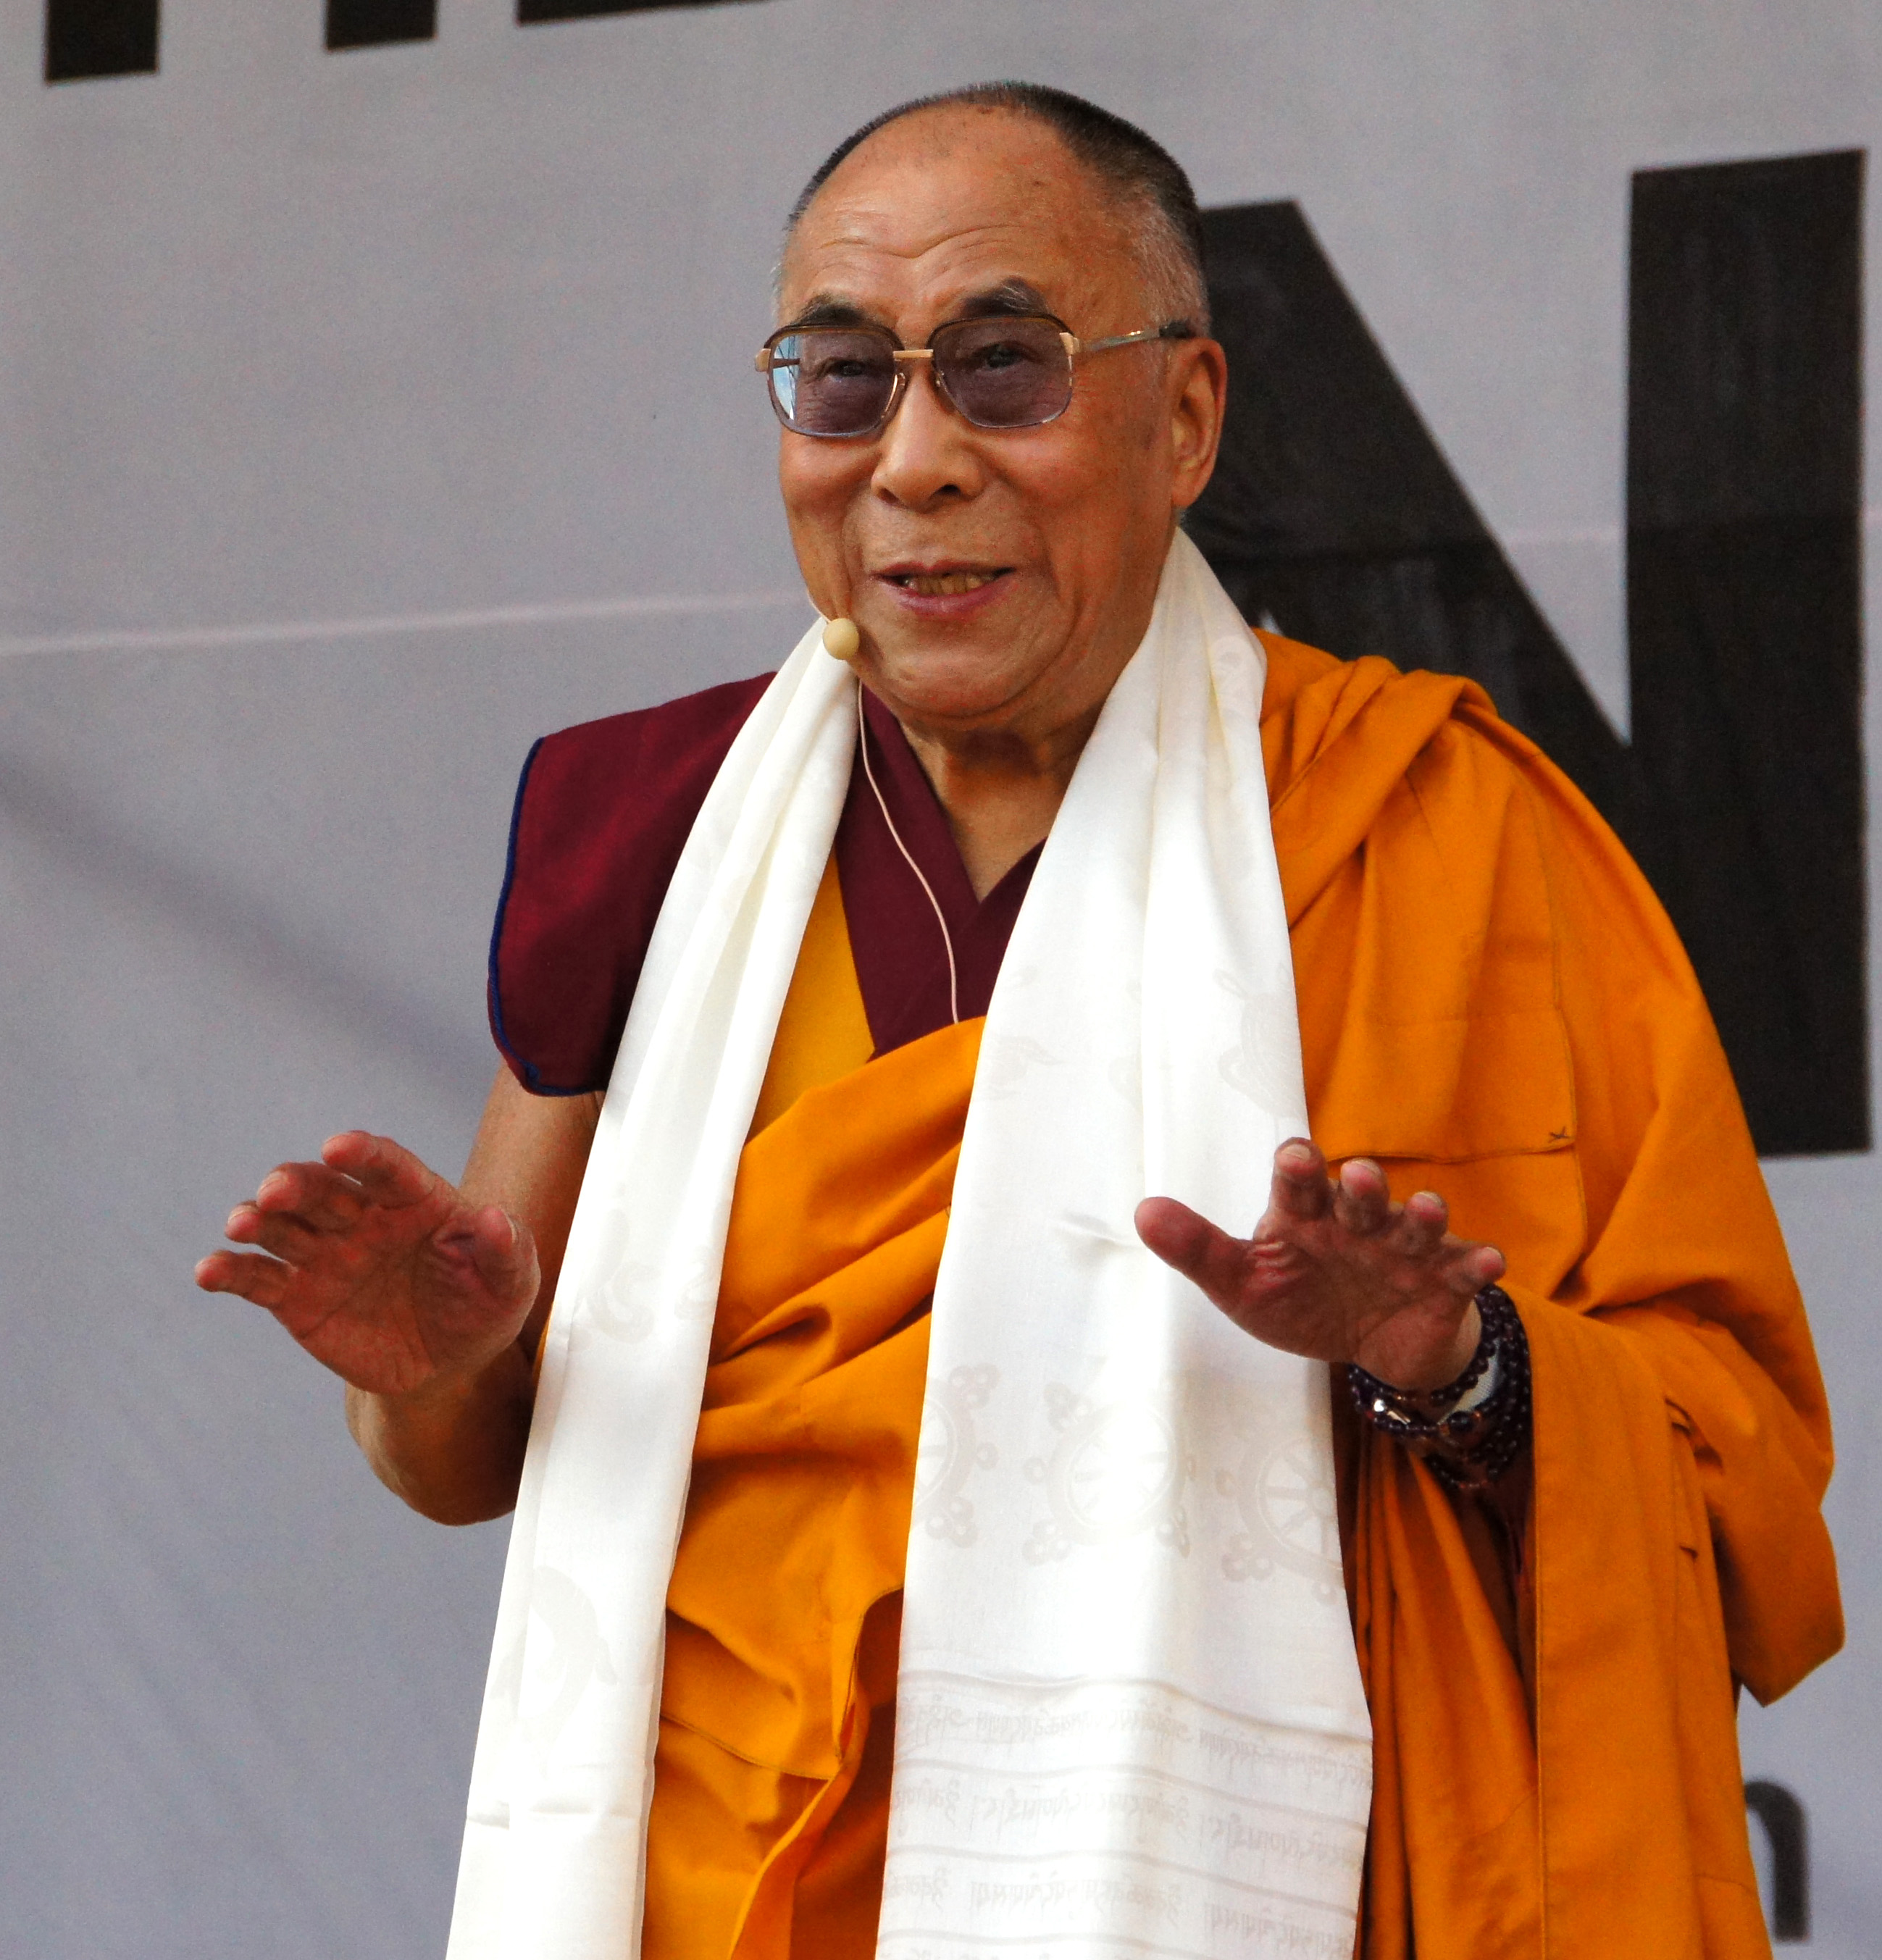 the 14th dalai lama His holiness the dalai lama addressing students from woodstock international school at his residence in dharamsala, hp, india on october 11, 2018 thekchen chöling, dharamsala, hp, india - the happy chatter that filled the meeting room next to his holiness the dalai lama's office fell silent when.